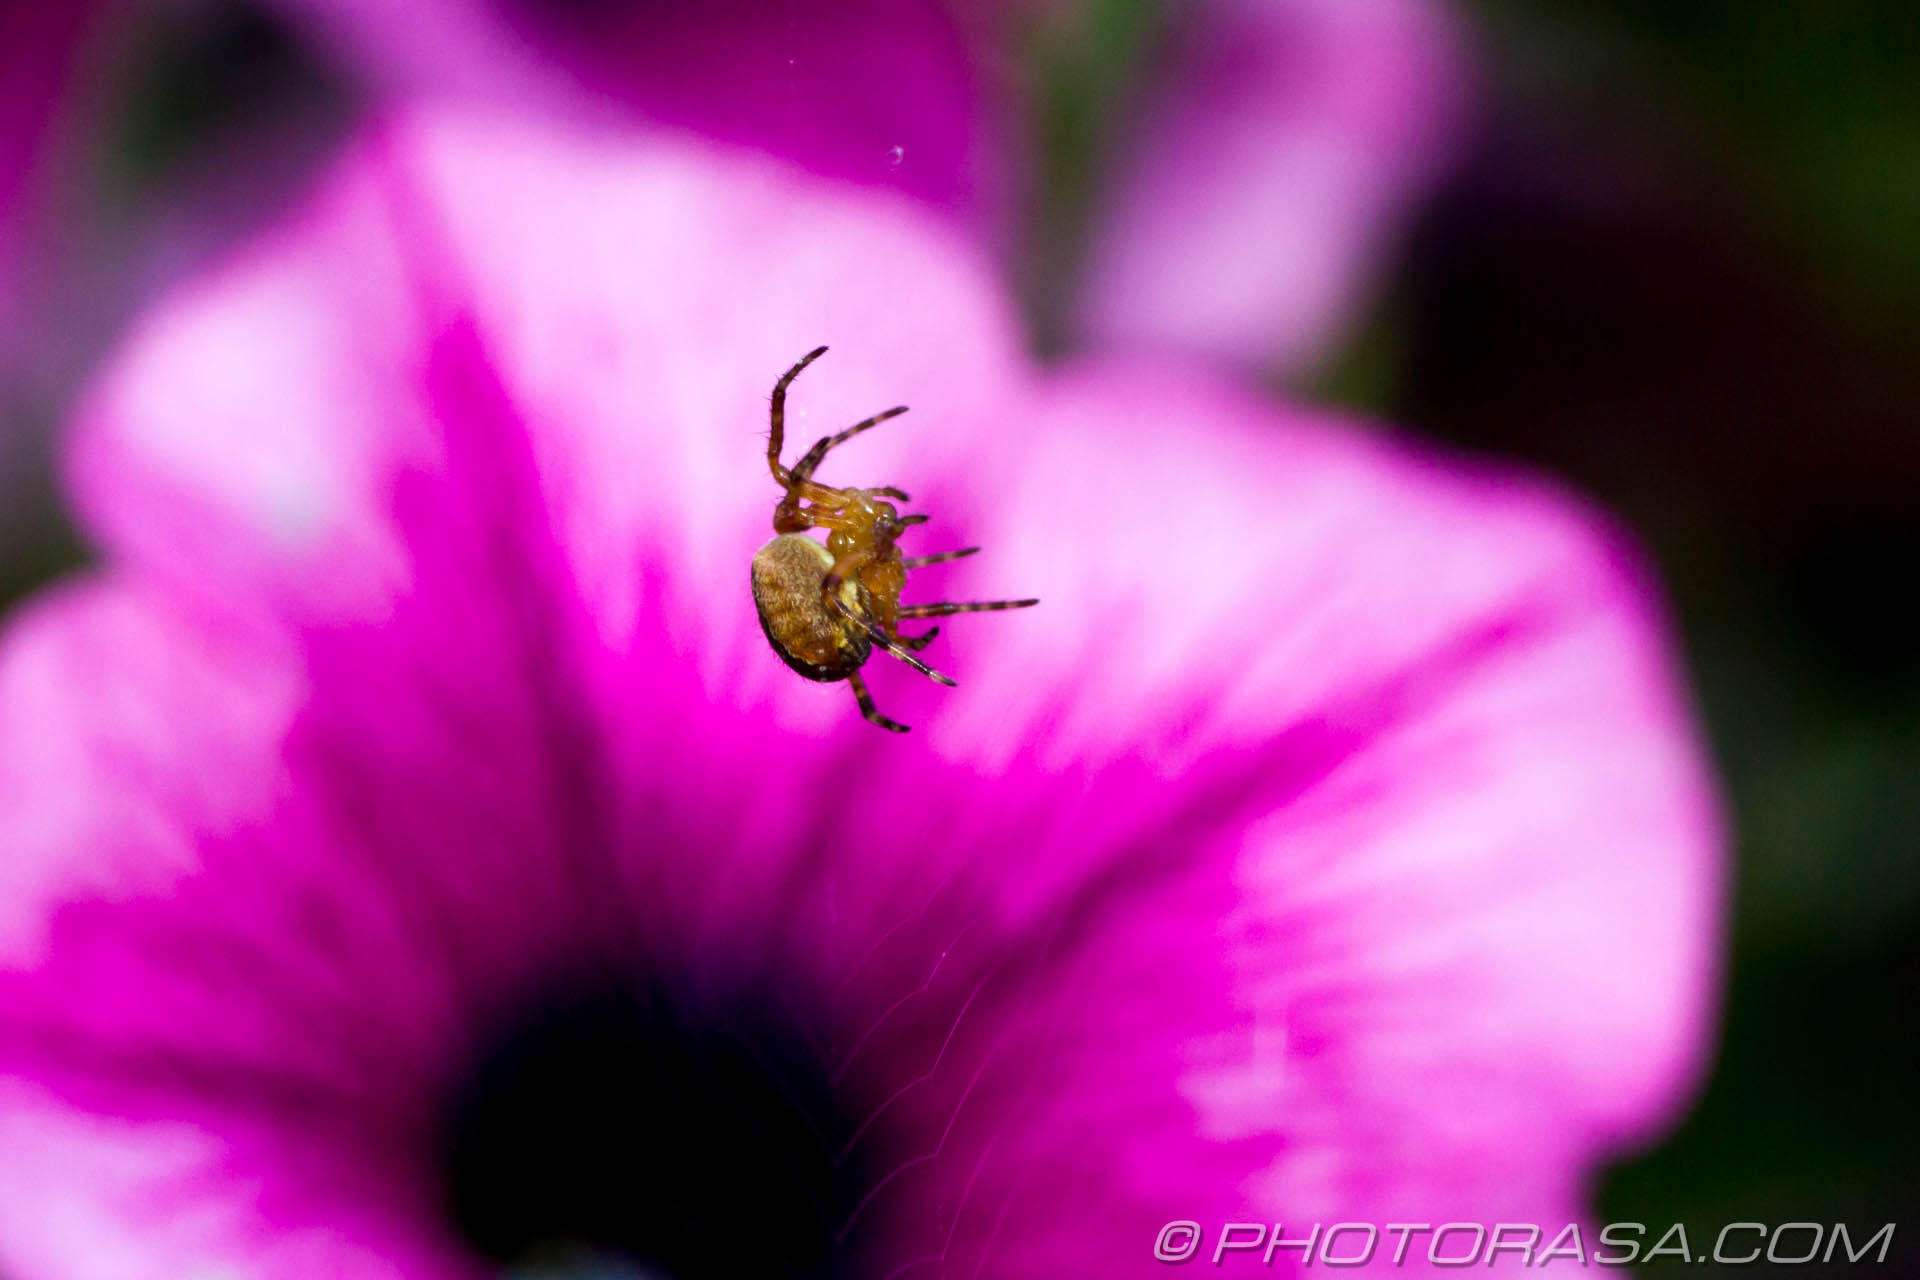 http://photorasa.com/spider-petunias/spider-and-petunia/